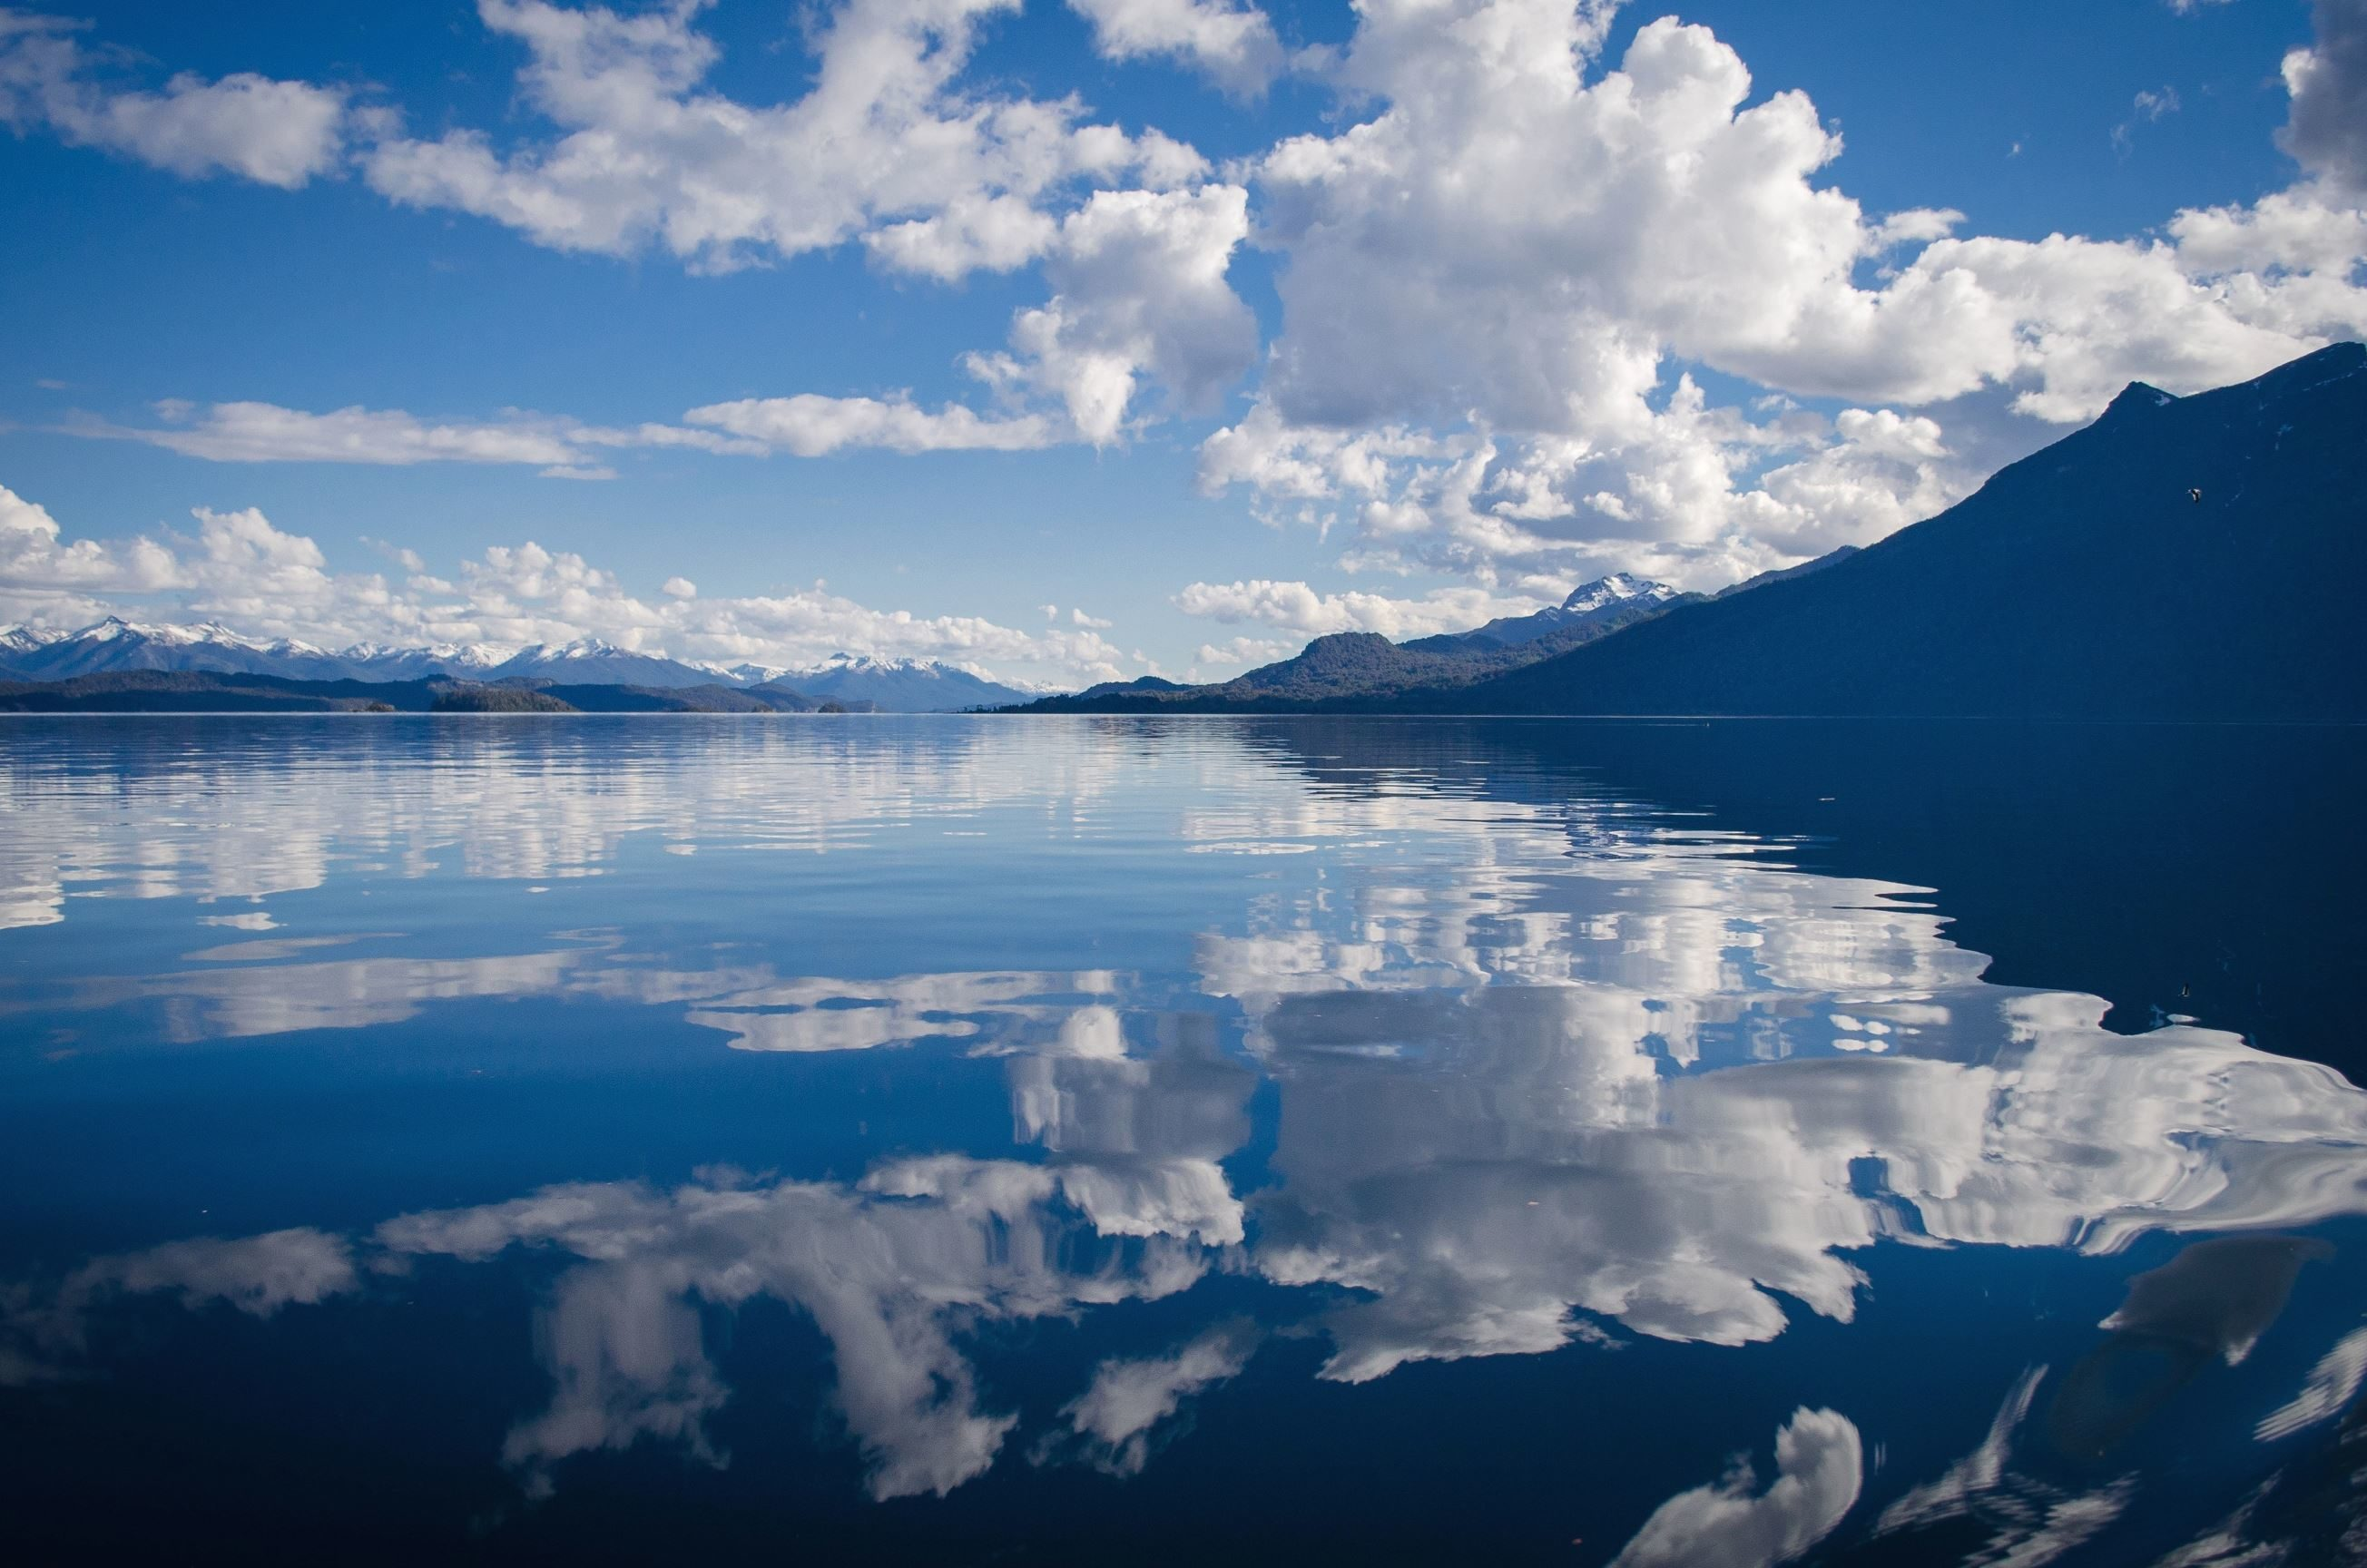 Free picture: landscape, mountains, clouds, lake, nature ...